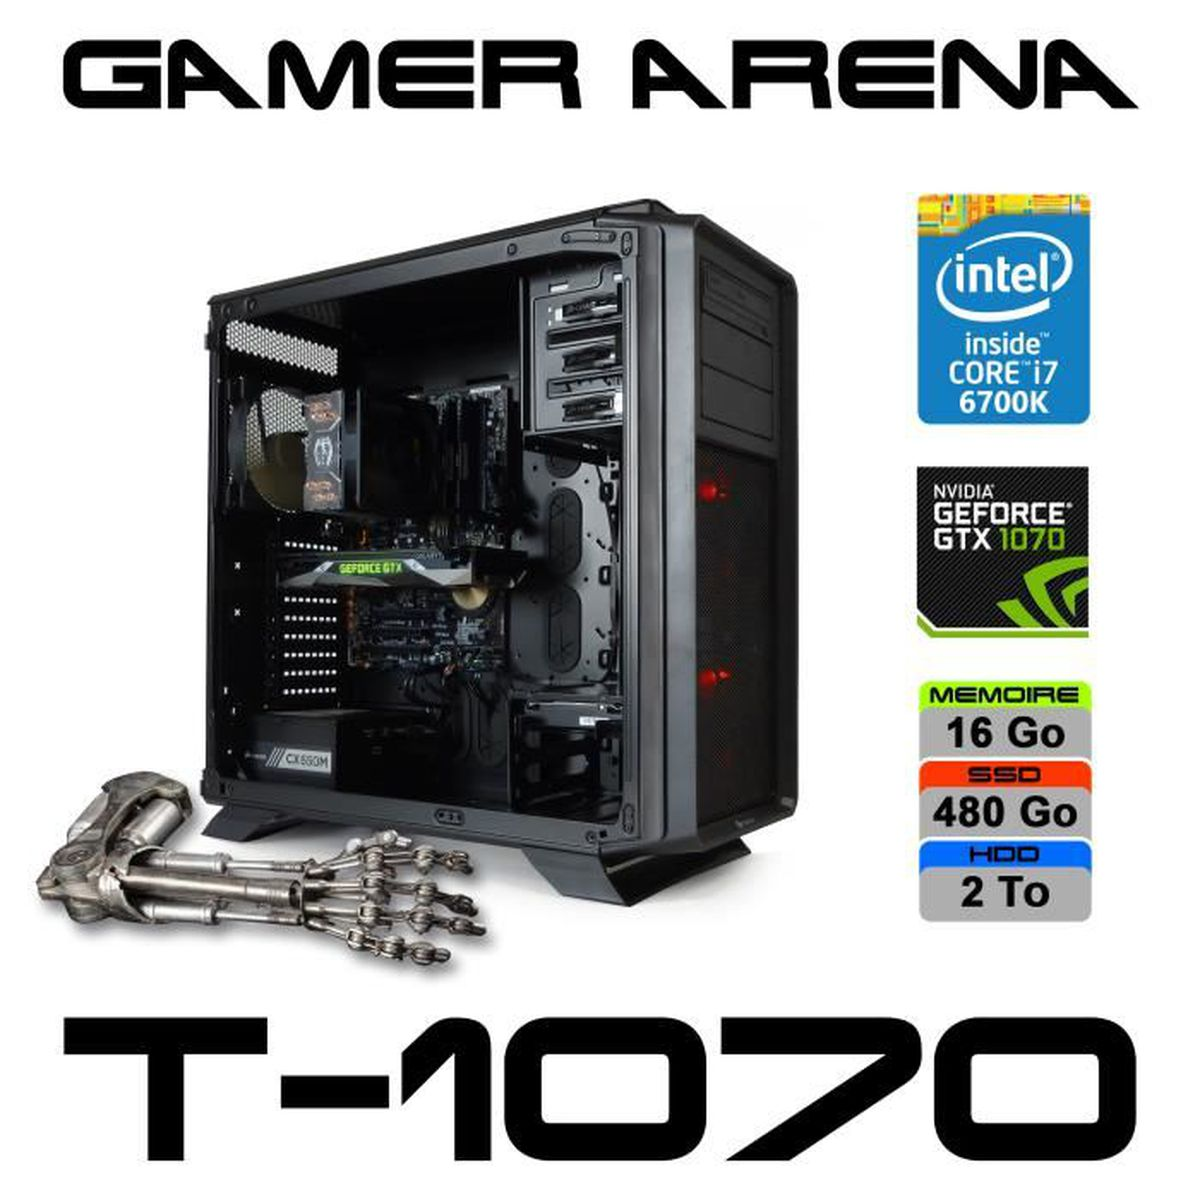 pc gamer arena t 1070 gtx 1070 core i7 6700k windows. Black Bedroom Furniture Sets. Home Design Ideas